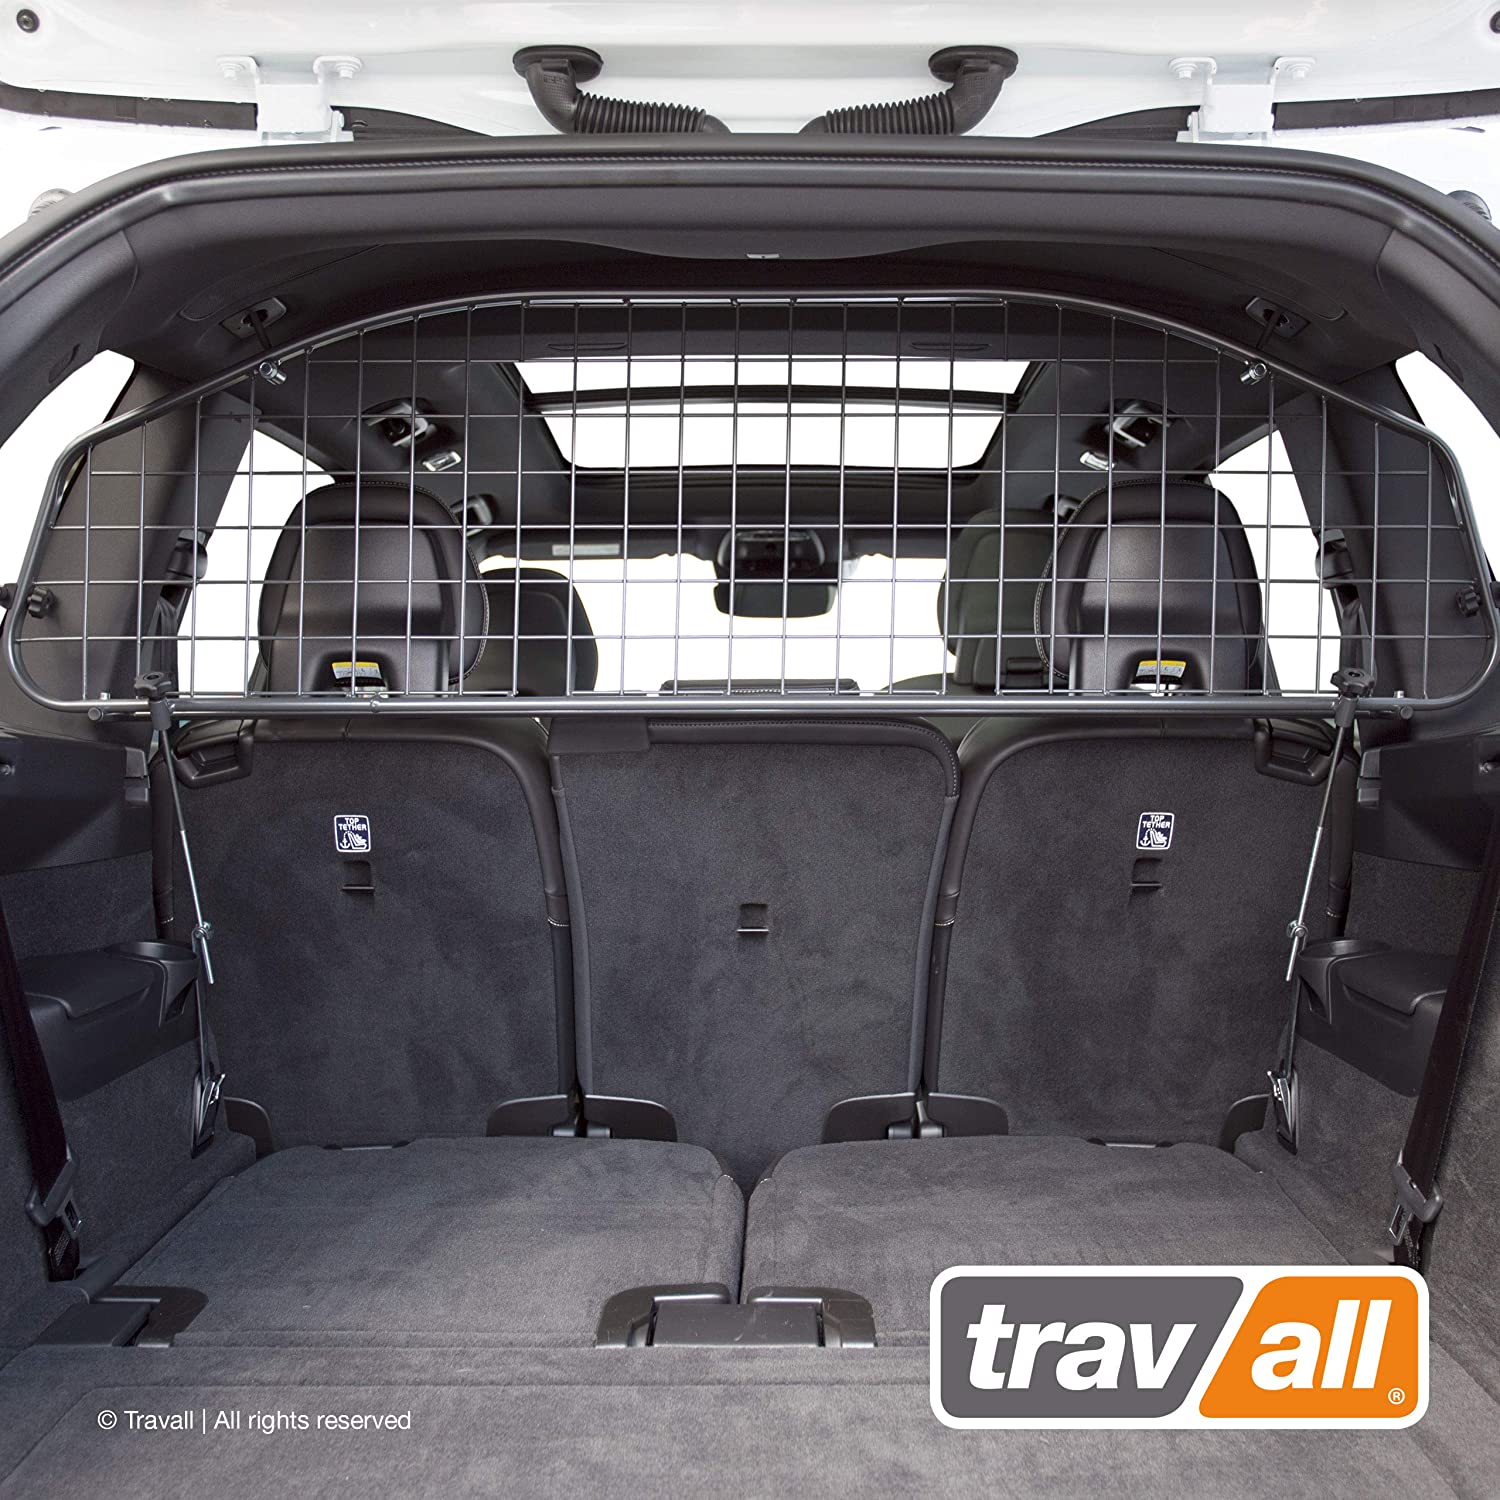 Travall Guard Compatible with Volvo XC90 2014-Current TDG1487 – Rattle-Free Steel Pet Barrier